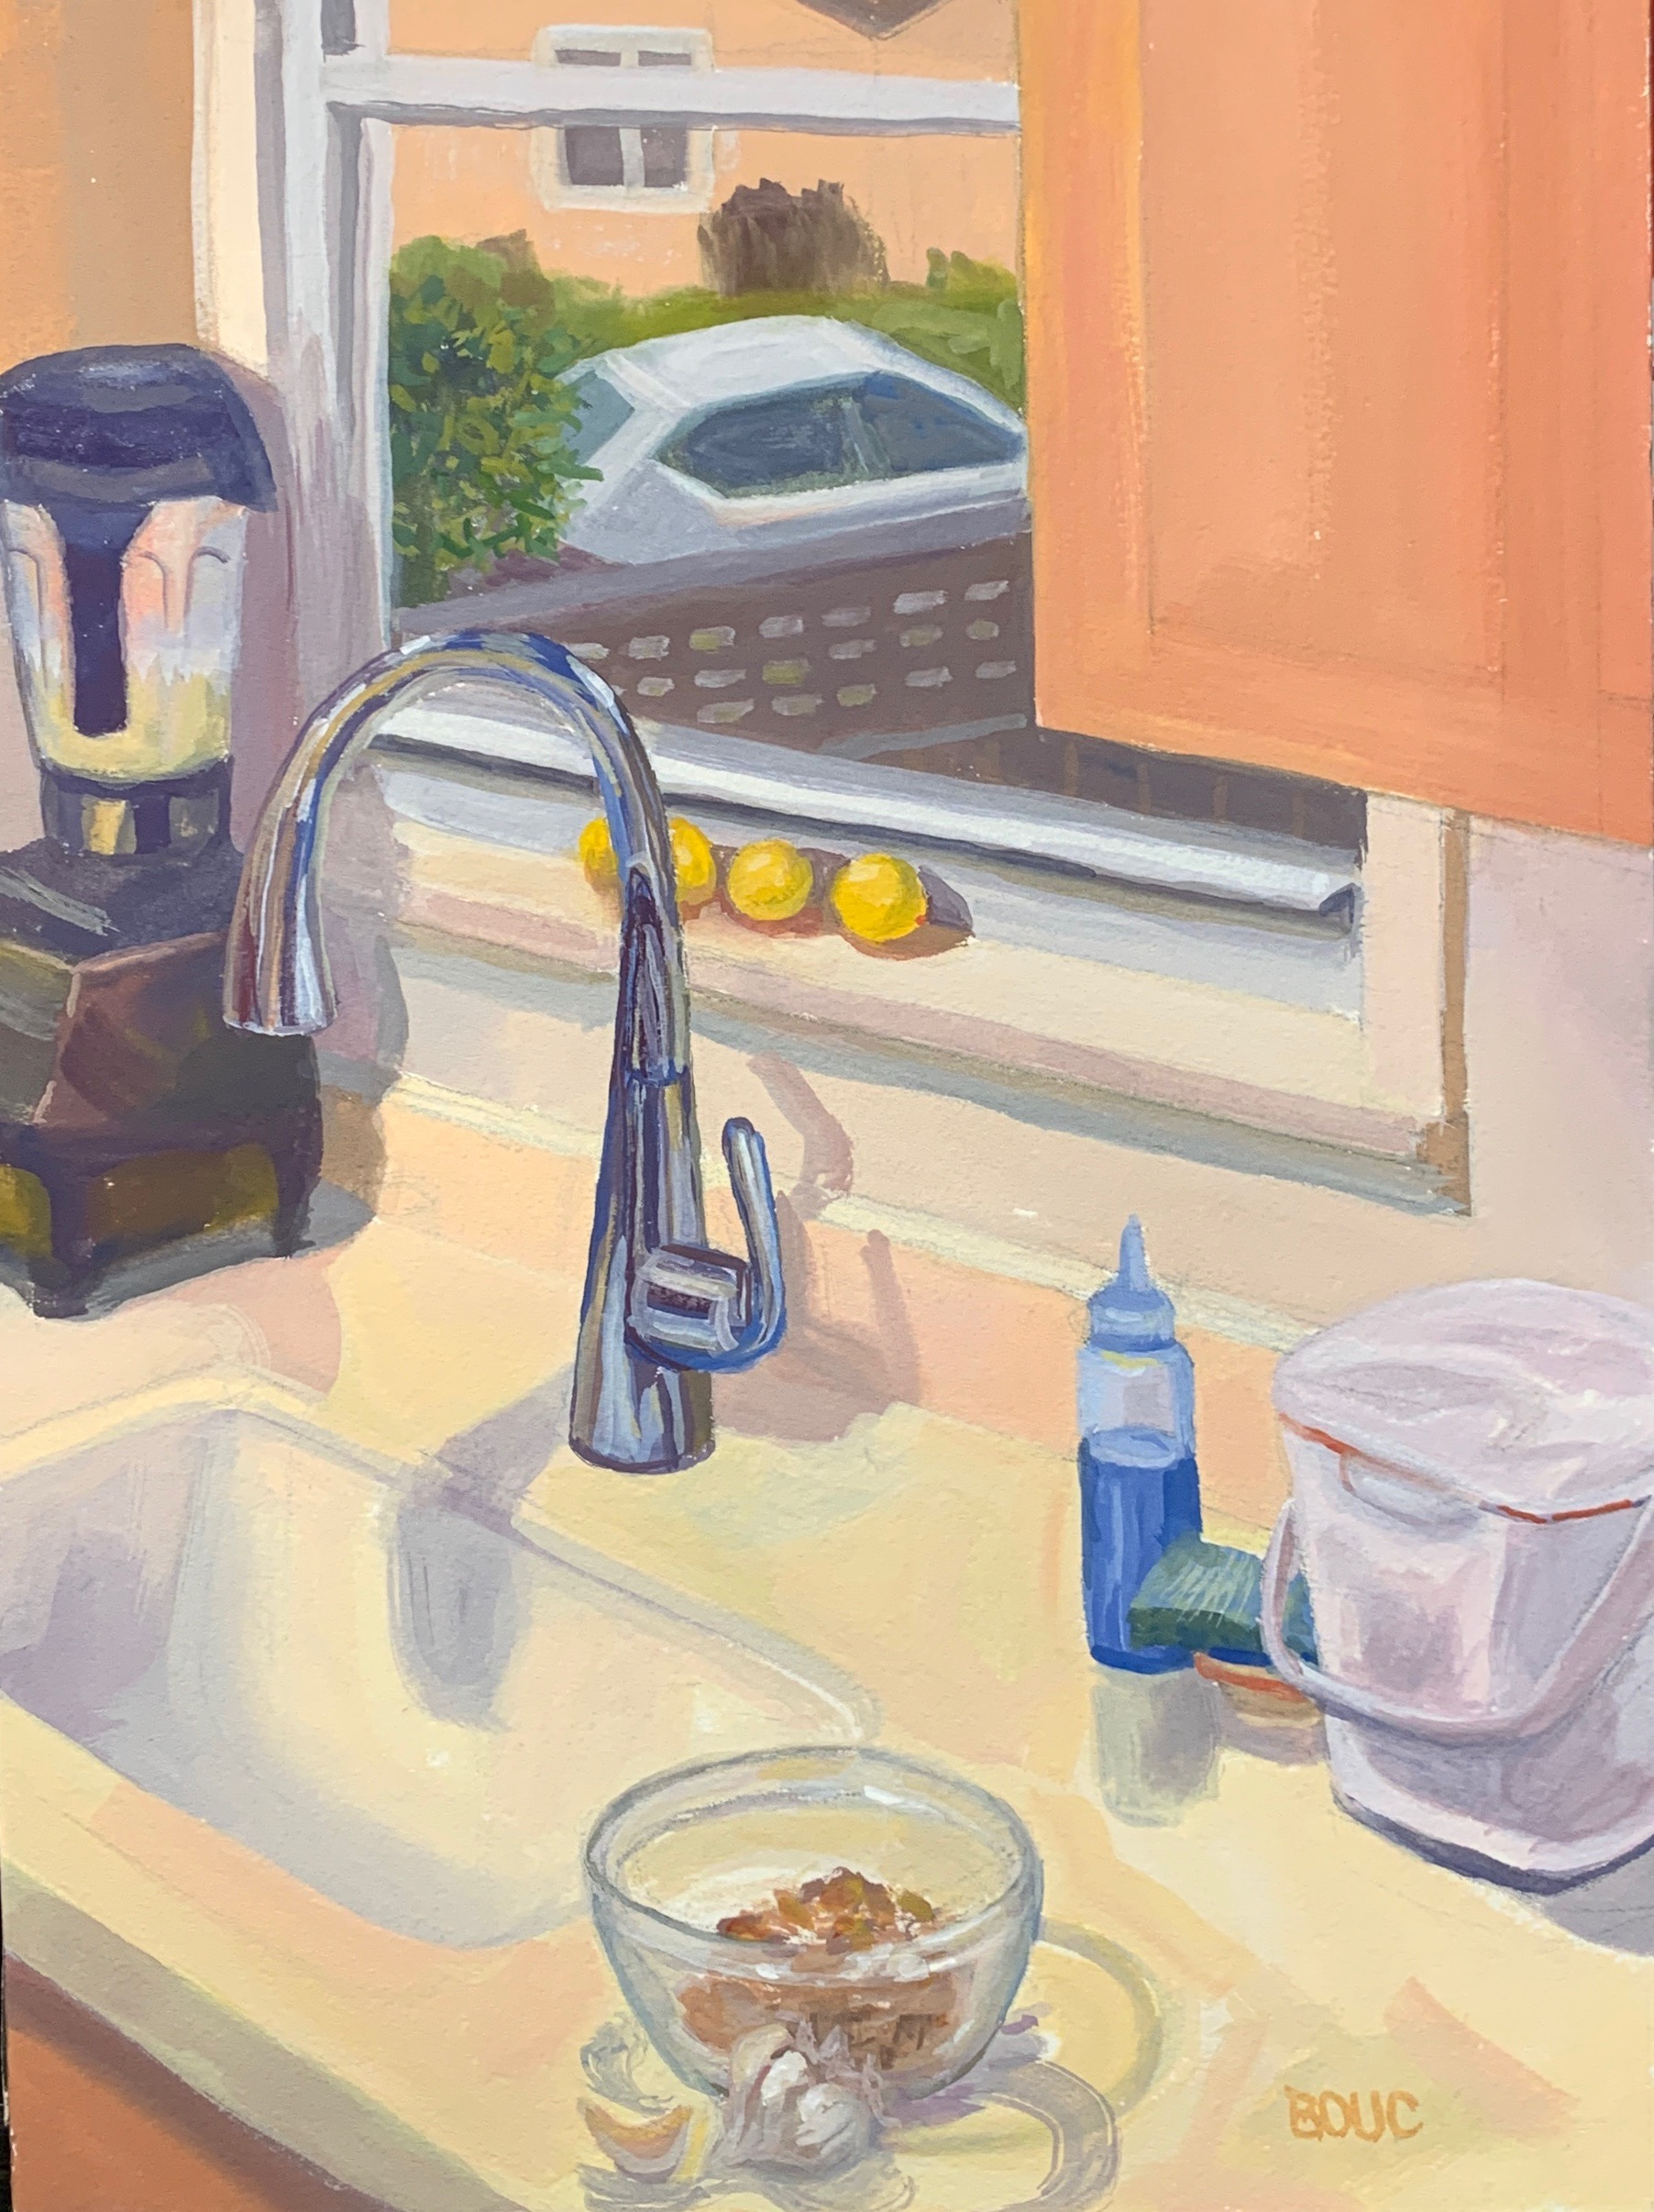 My New Kitchen, gouache on Arches watercolor paper, 12 x 9 inches